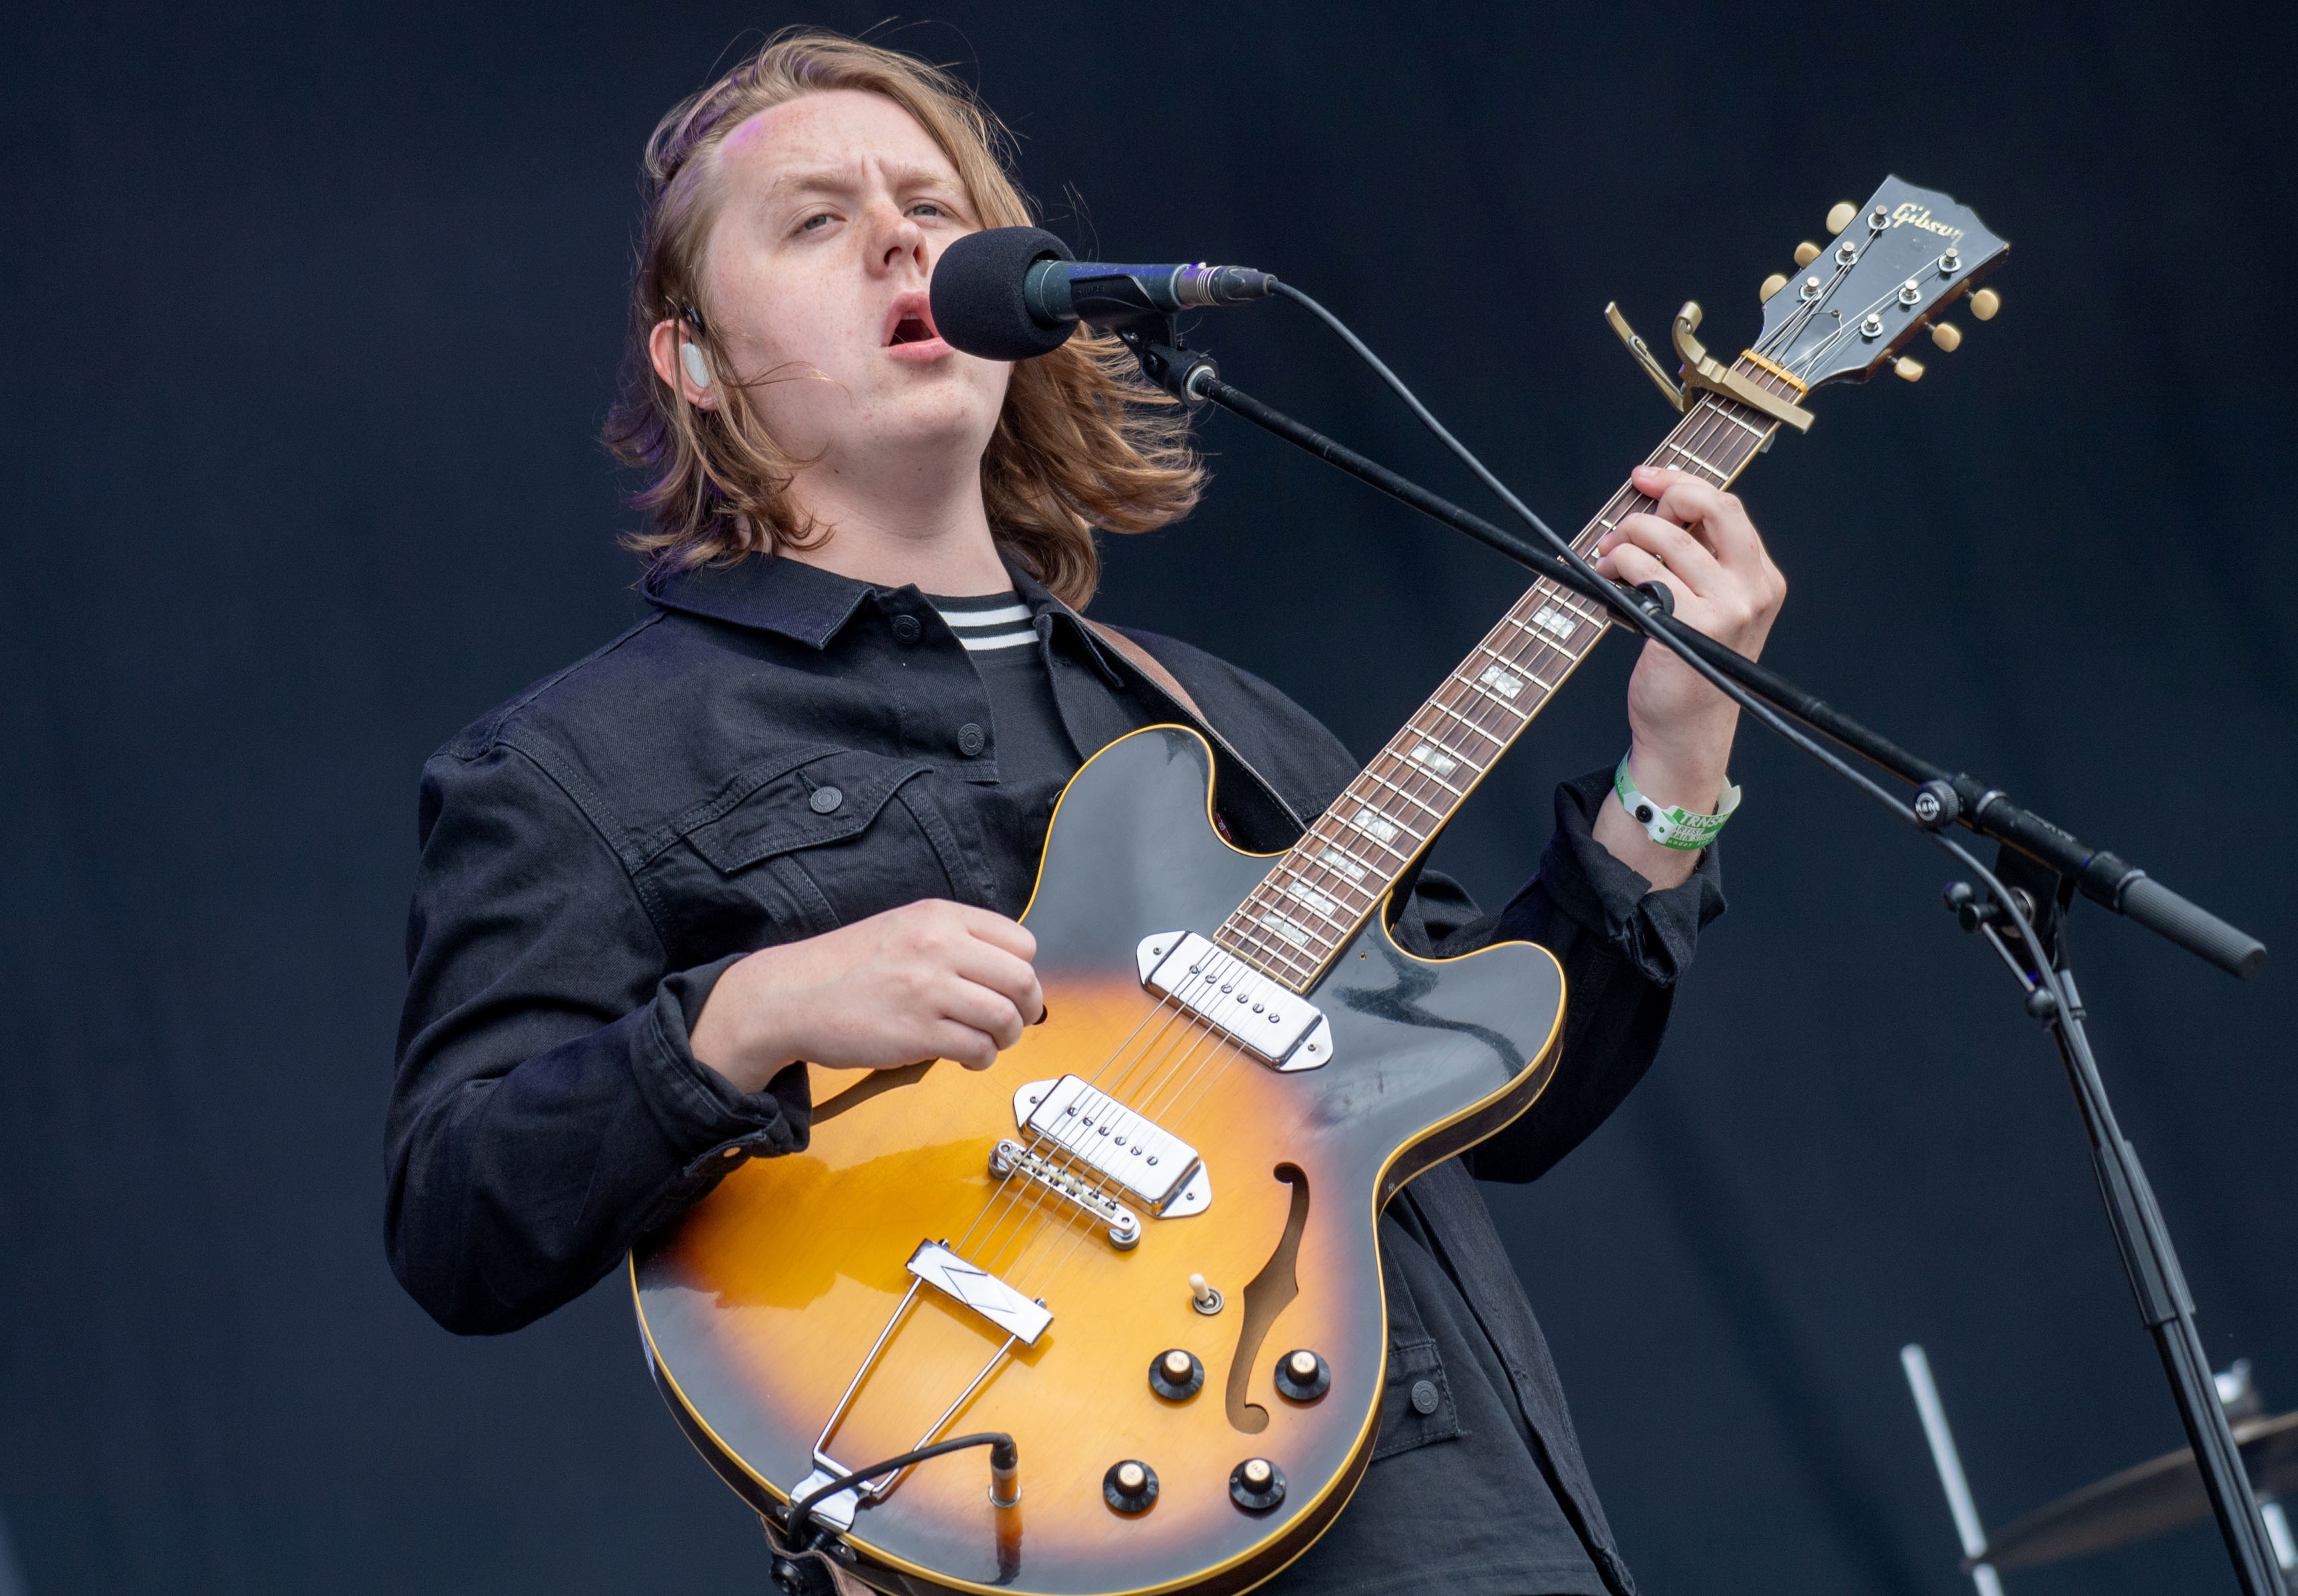 Lewis Capaldi on being a 'third wheel' with Niall Horan and Hailee Steinfeld